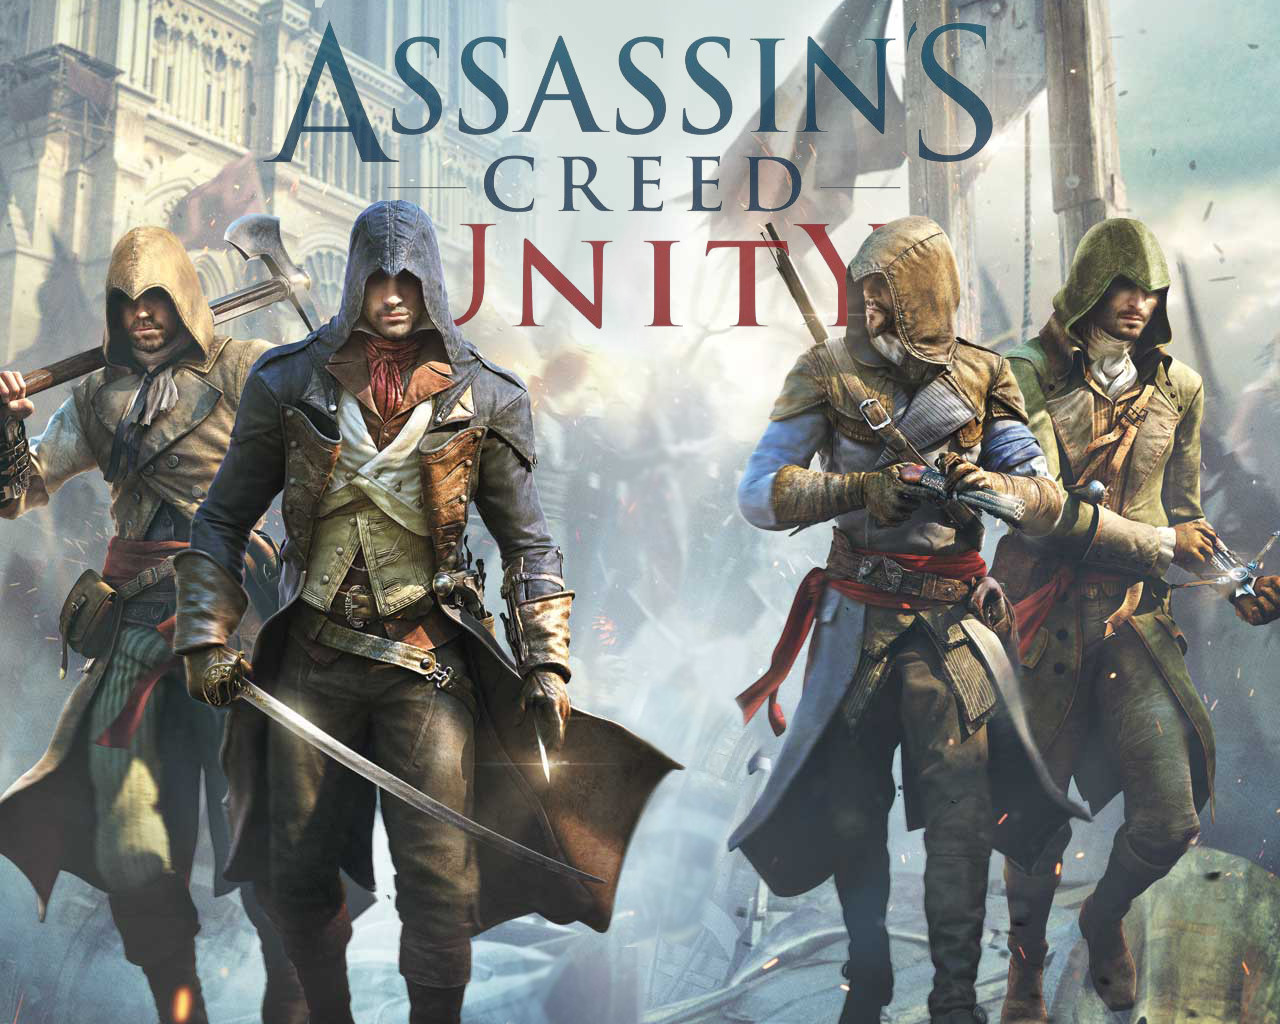 Assassin's Creed Unity Wallpaper 1920x1080 - WallpaperSafari